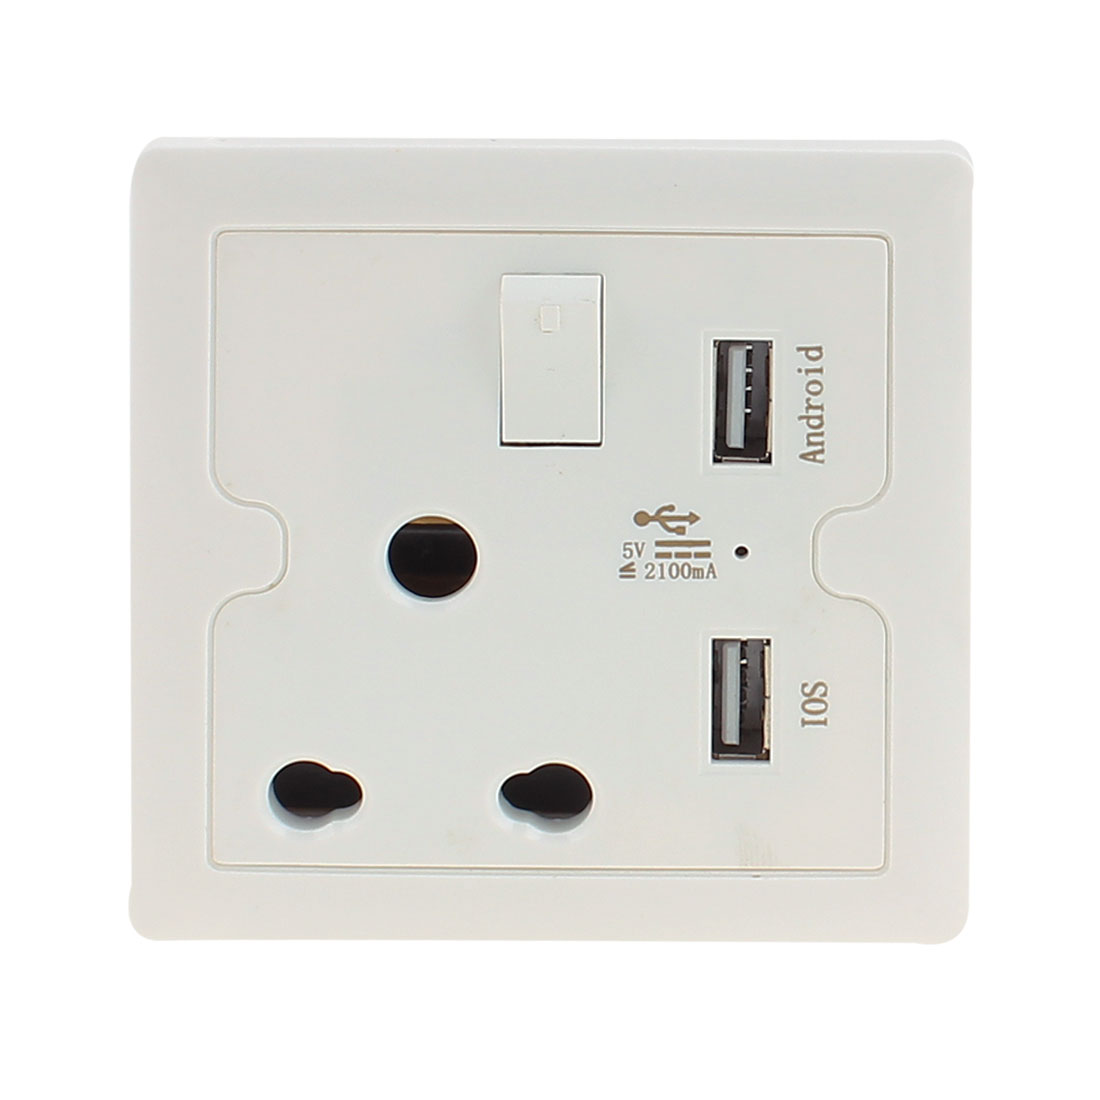 AC 110V-250V South Africa Socket 2 USB Port 5VDC 2100mA Charger Charging Power Switch Wall Outlet